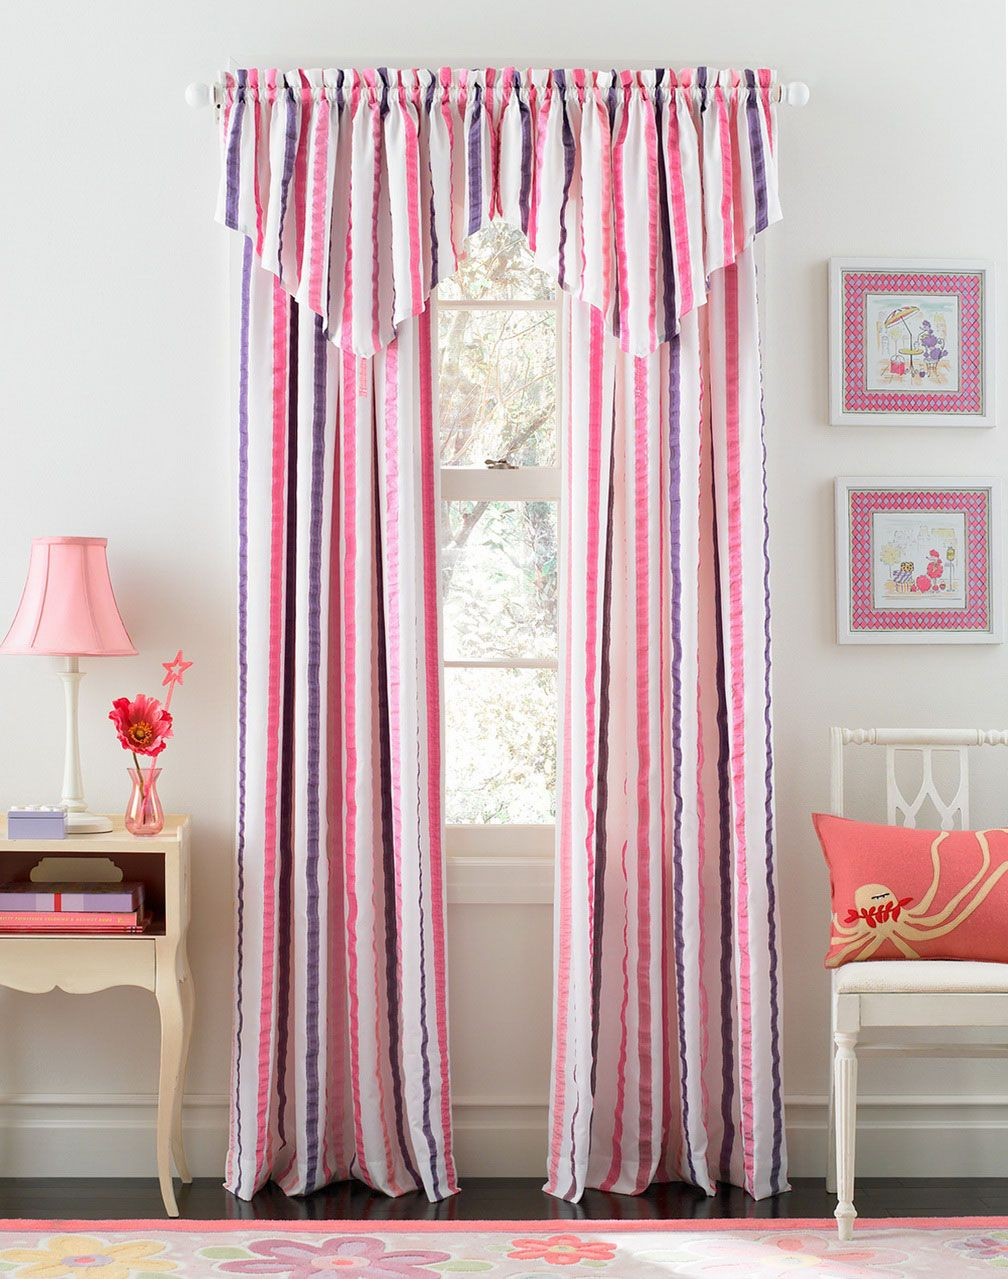 adorable curtains - Google Search | C stands for Curtains ...